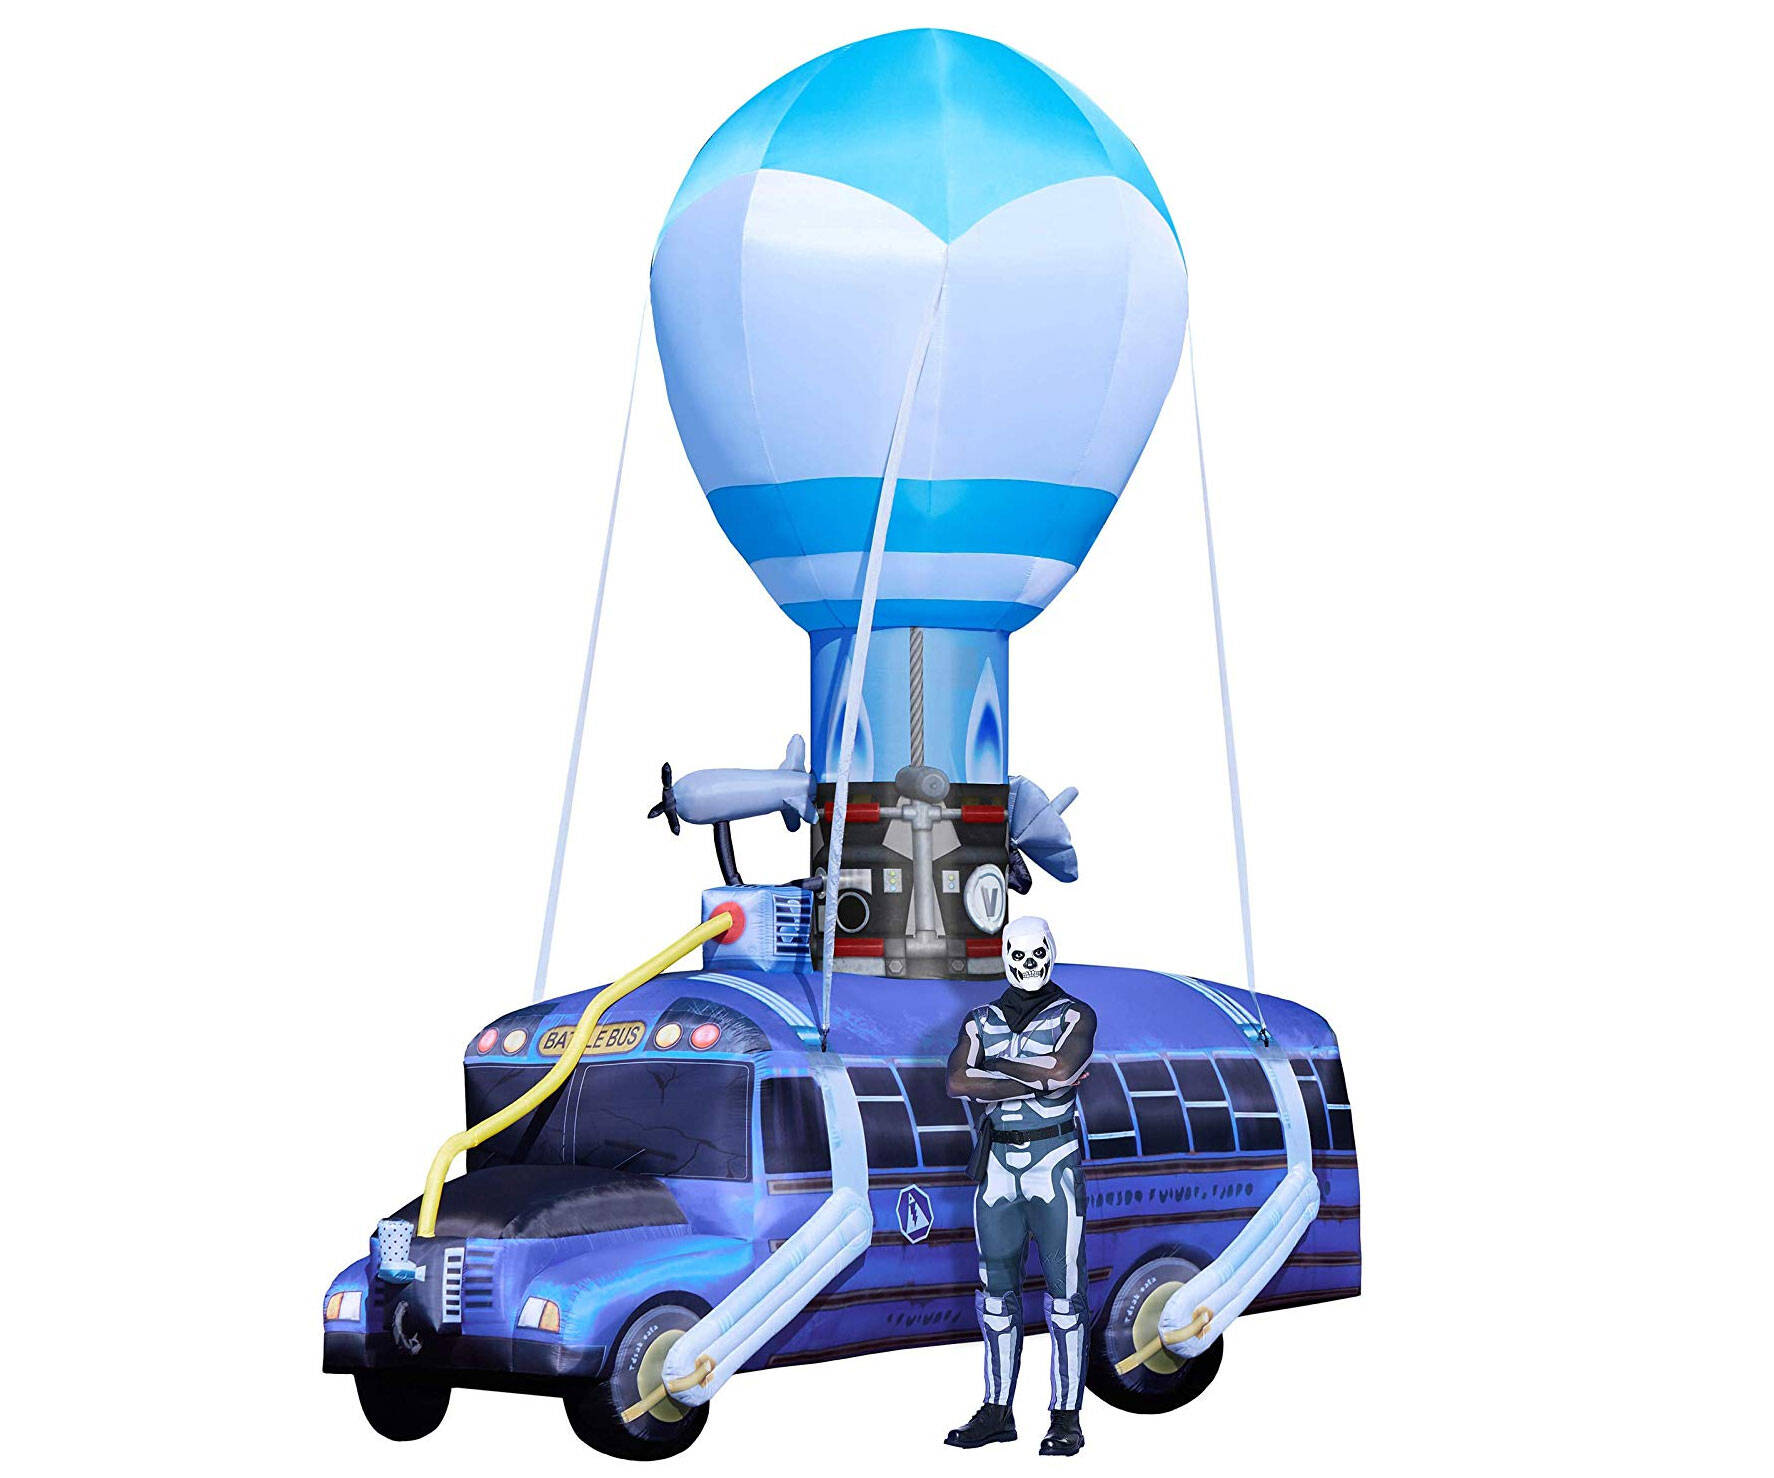 Fortnite 17.5 Ft Battle Bus Inflatable - http://coolthings.us